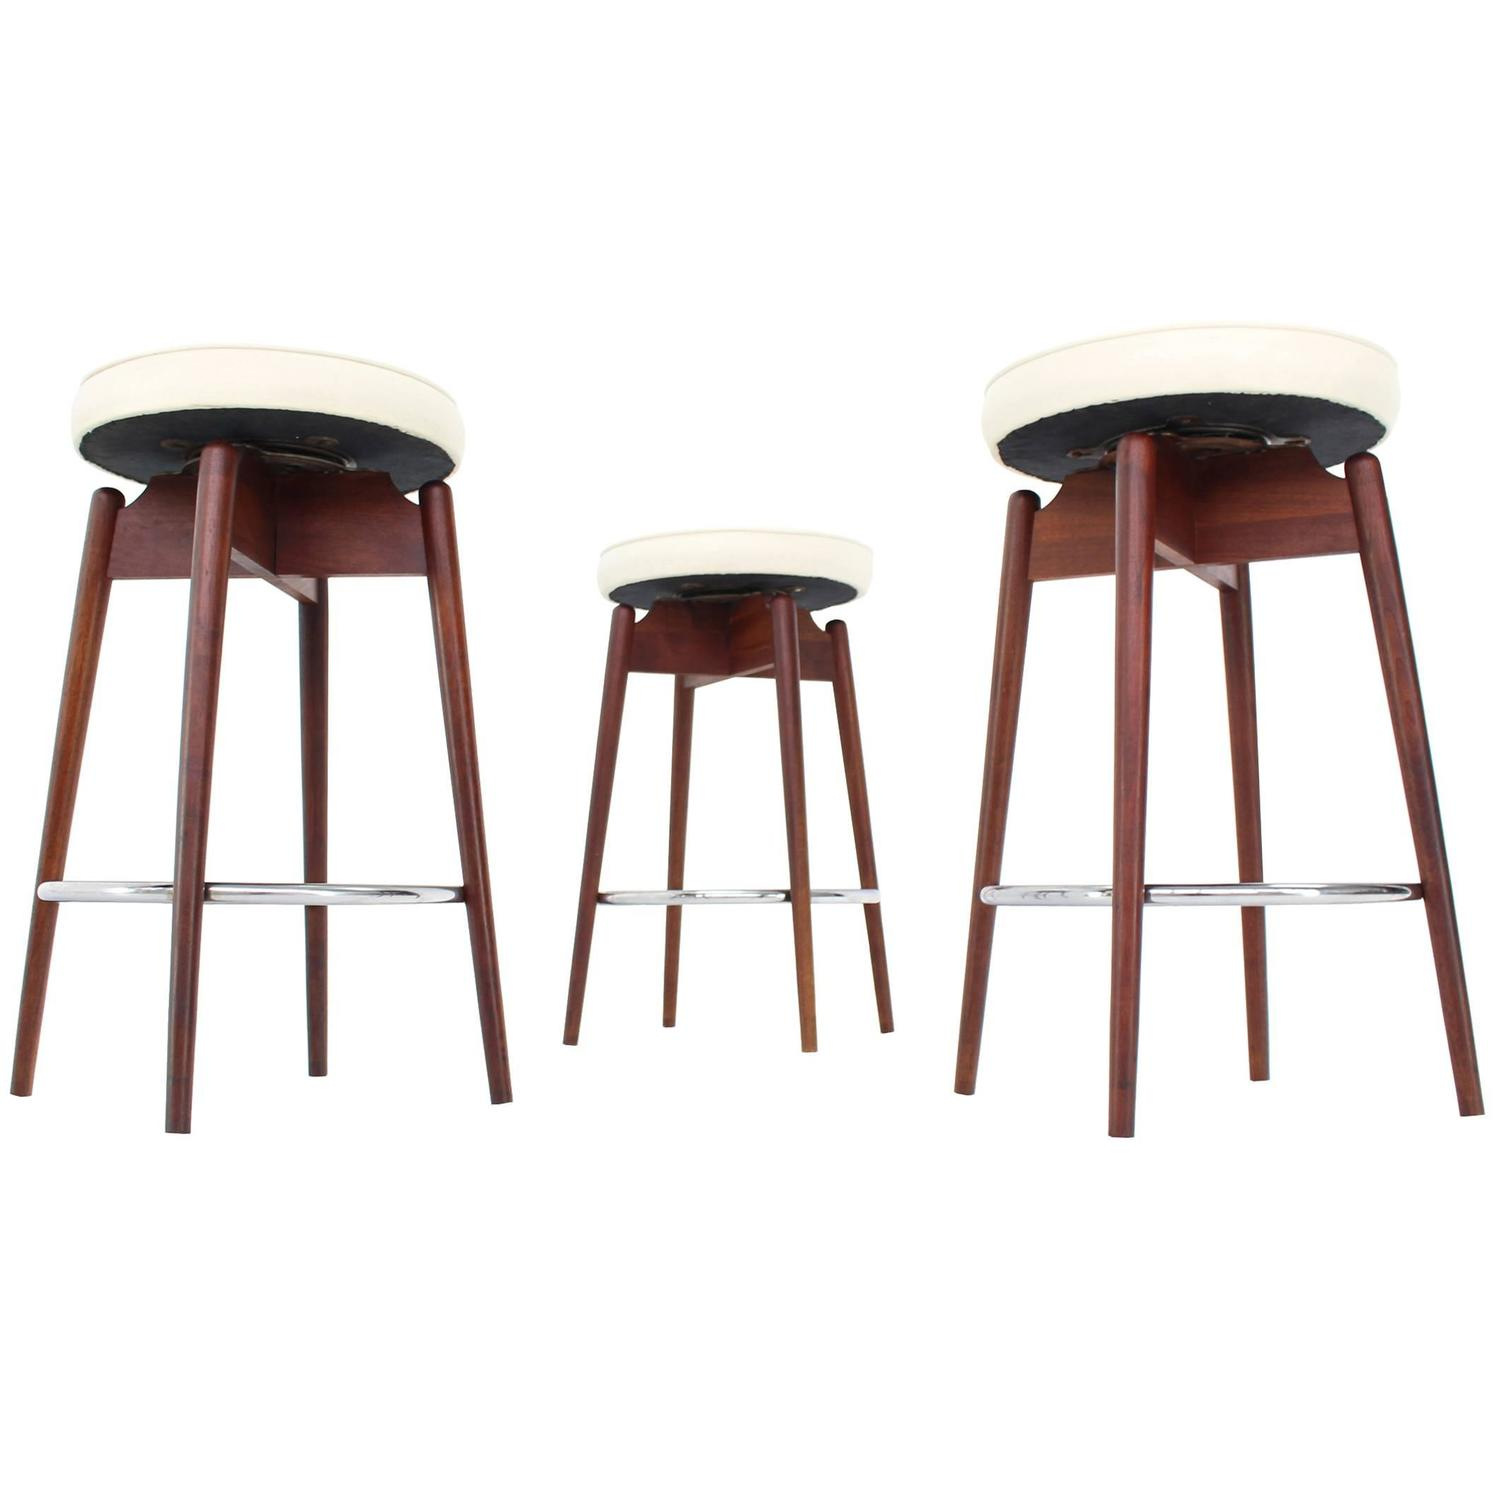 Three Mid Century Modern Walnut Bar Stools at 1stdibs : IMG5634orgz from www.1stdibs.com size 1500 x 1500 jpeg 69kB